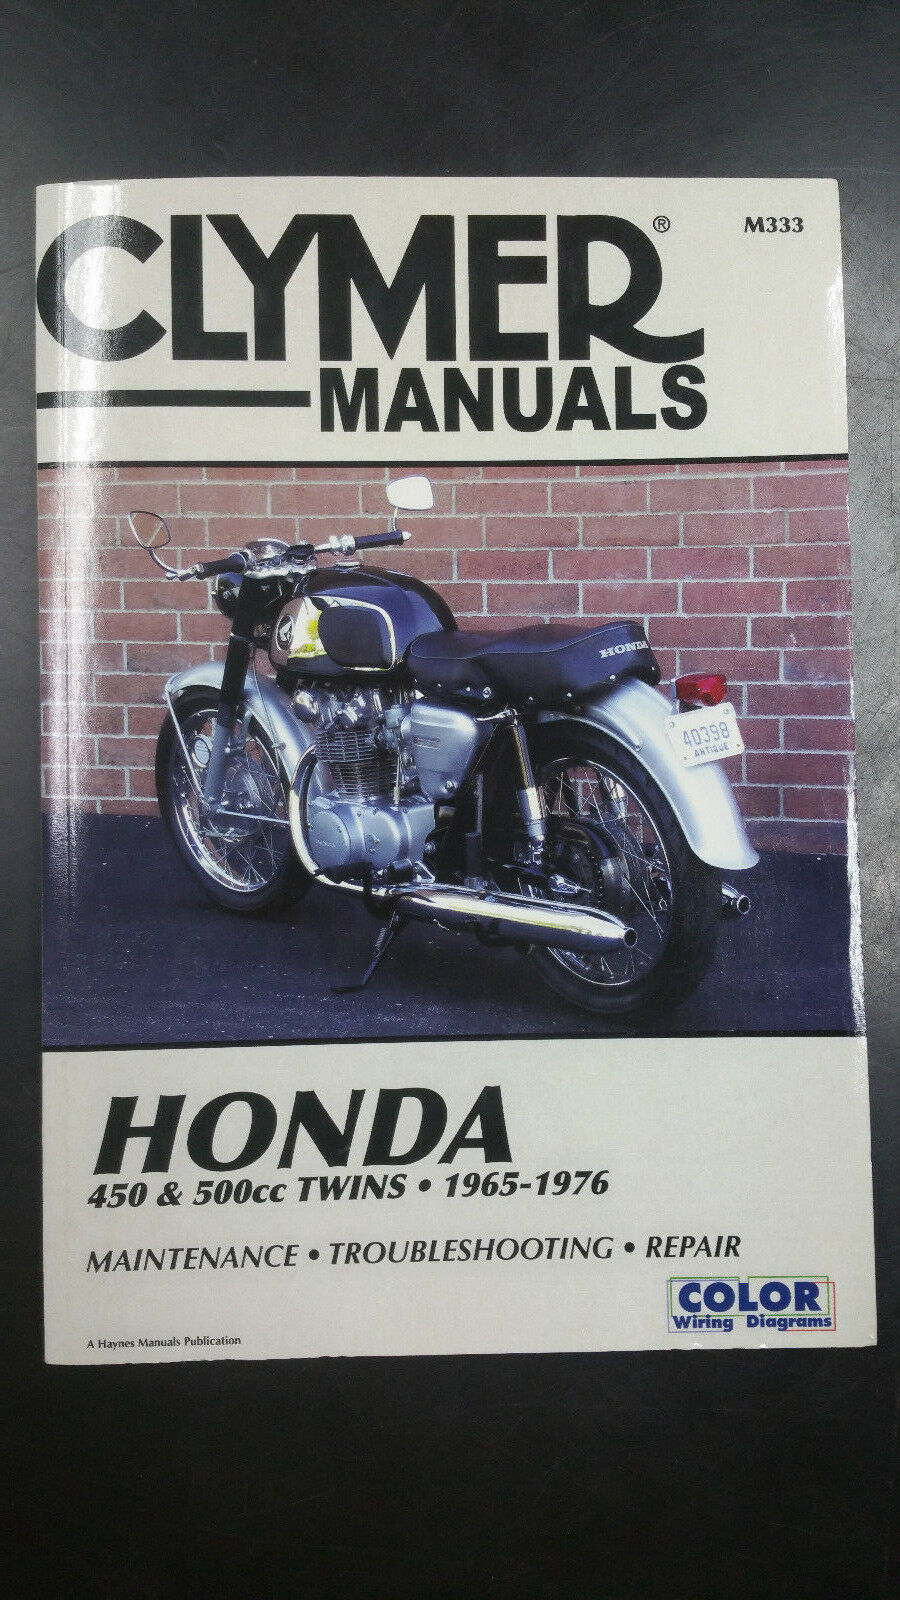 76 Honda Cb550 Service Manual 1992 Gl1500 Wiring Diagram Cb400f U0026 Repair 1973 1977 Array 1971 1978 Cb350 Sohc Fours Clymer Motorcycle Rh